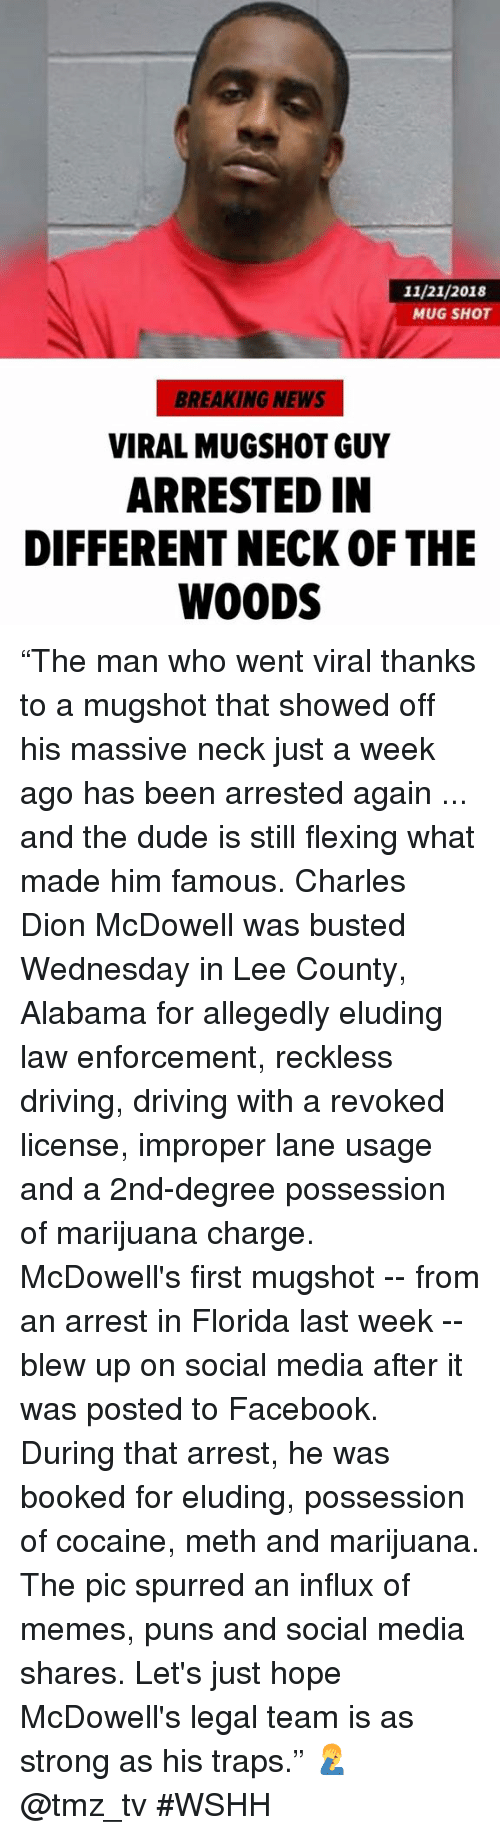 "Driving, Dude, and Facebook: 11/21/2018  MUG SHOT  BREAKING NEWS  VIRAL MUGSHOT GUY  ARRESTED IN  DIFFERENT NECK OF THE  WOODS ""The man who went viral thanks to a mugshot that showed off his massive neck just a week ago has been arrested again ... and the dude is still flexing what made him famous. Charles Dion McDowell was busted Wednesday in Lee County, Alabama for allegedly eluding law enforcement, reckless driving, driving with a revoked license, improper lane usage and a 2nd-degree possession of marijuana charge. McDowell's first mugshot -- from an arrest in Florida last week -- blew up on social media after it was posted to Facebook. During that arrest, he was booked for eluding, possession of cocaine, meth and marijuana. The pic spurred an influx of memes, puns and social media shares. Let's just hope McDowell's legal team is as strong as his traps."" 🤦‍♂️ @tmz_tv #WSHH"